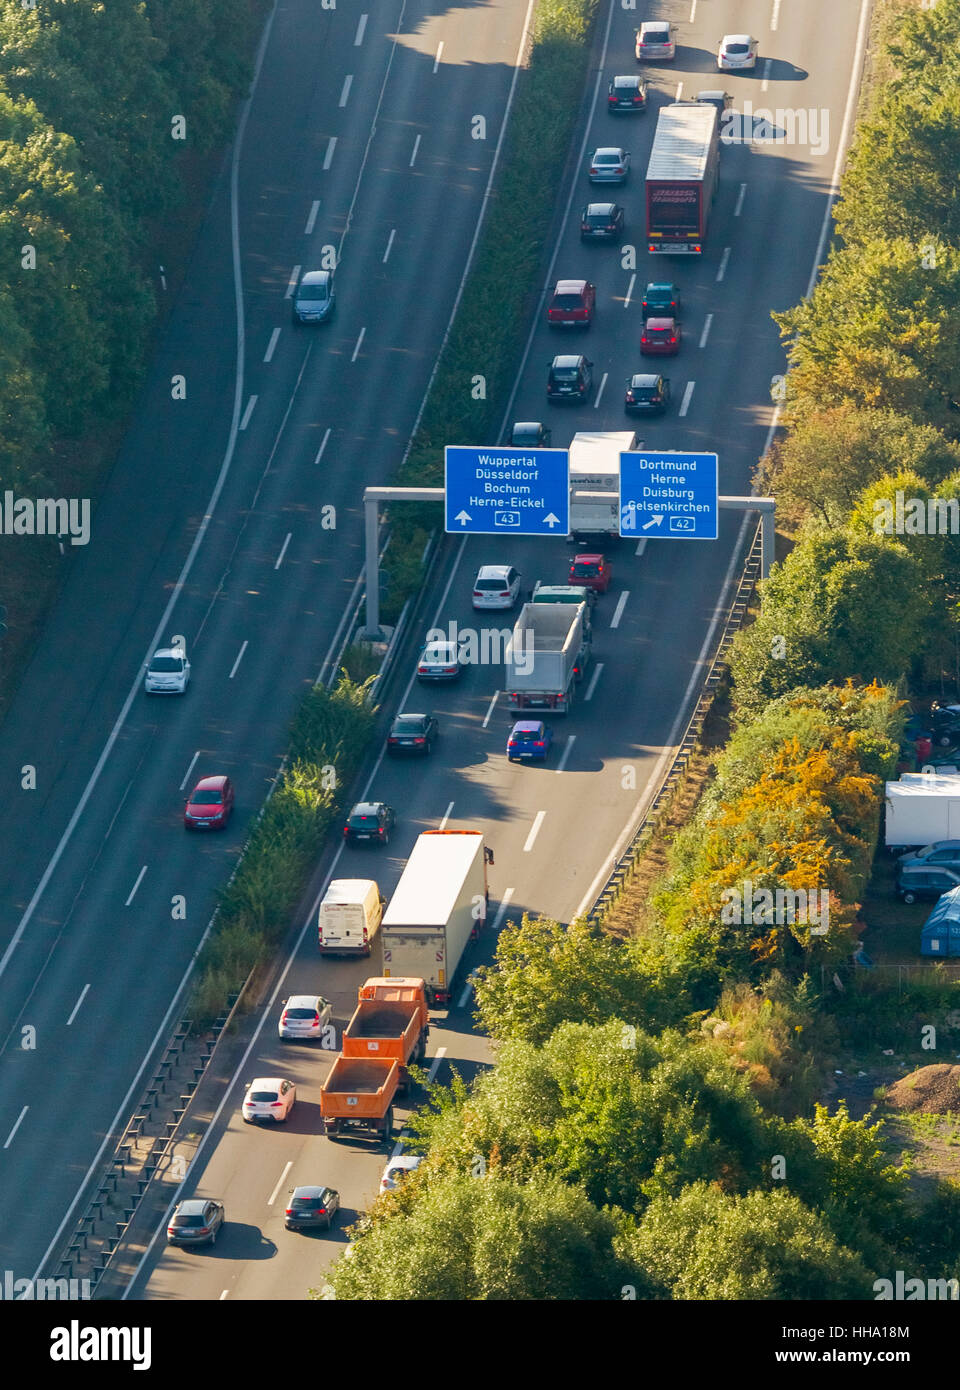 Highway intersection, A43 and A2, A43 congestion between Recklinghausen and Bochum, Recklinghausen, Ruhr area, Stock Photo